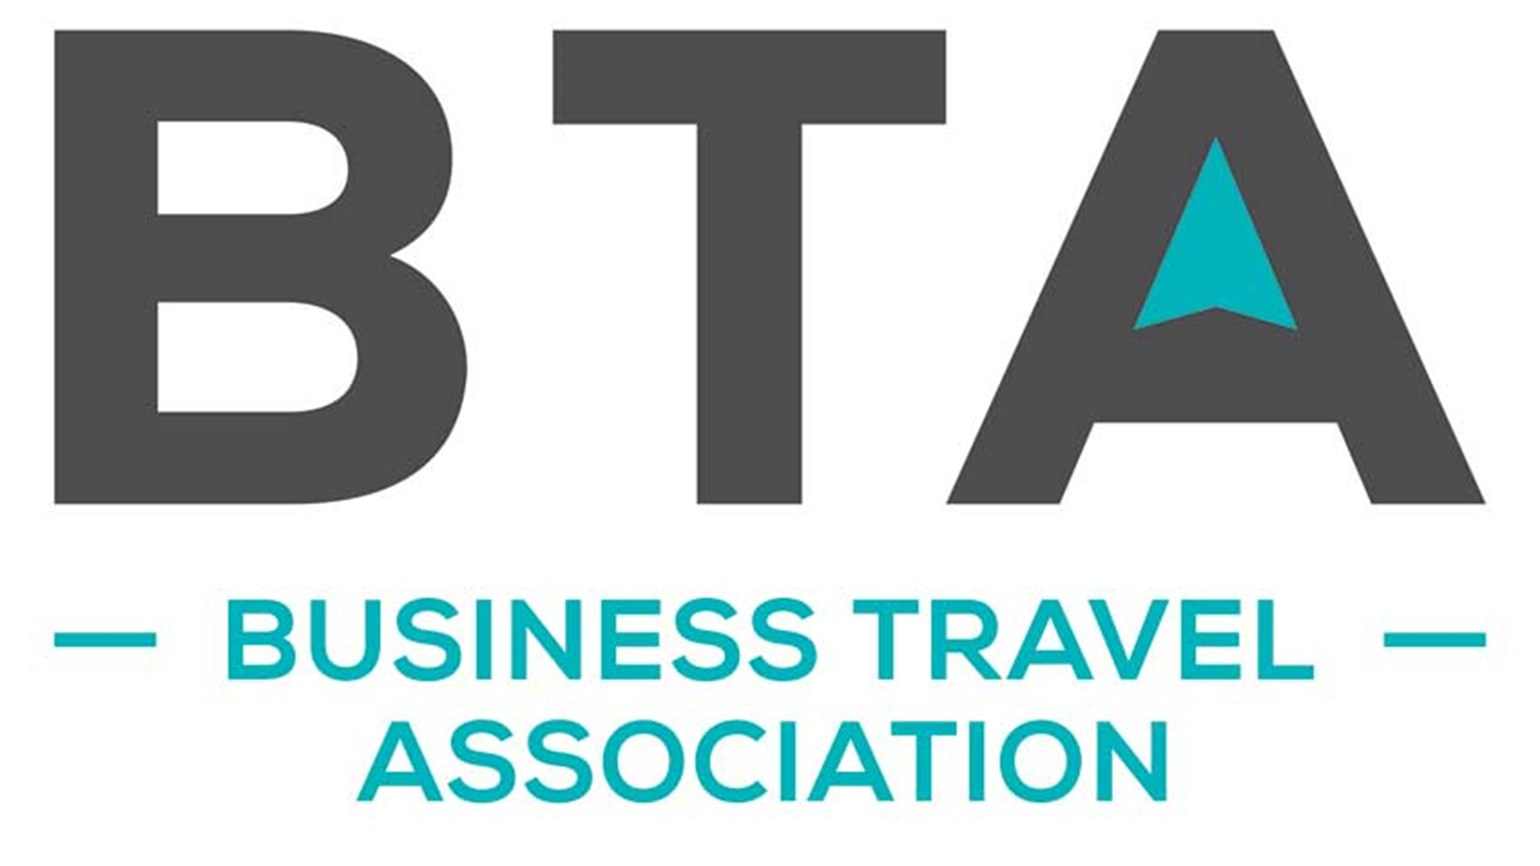 BTA, Travilearn and Avis partner on training courses for those impacted by Covid crisis